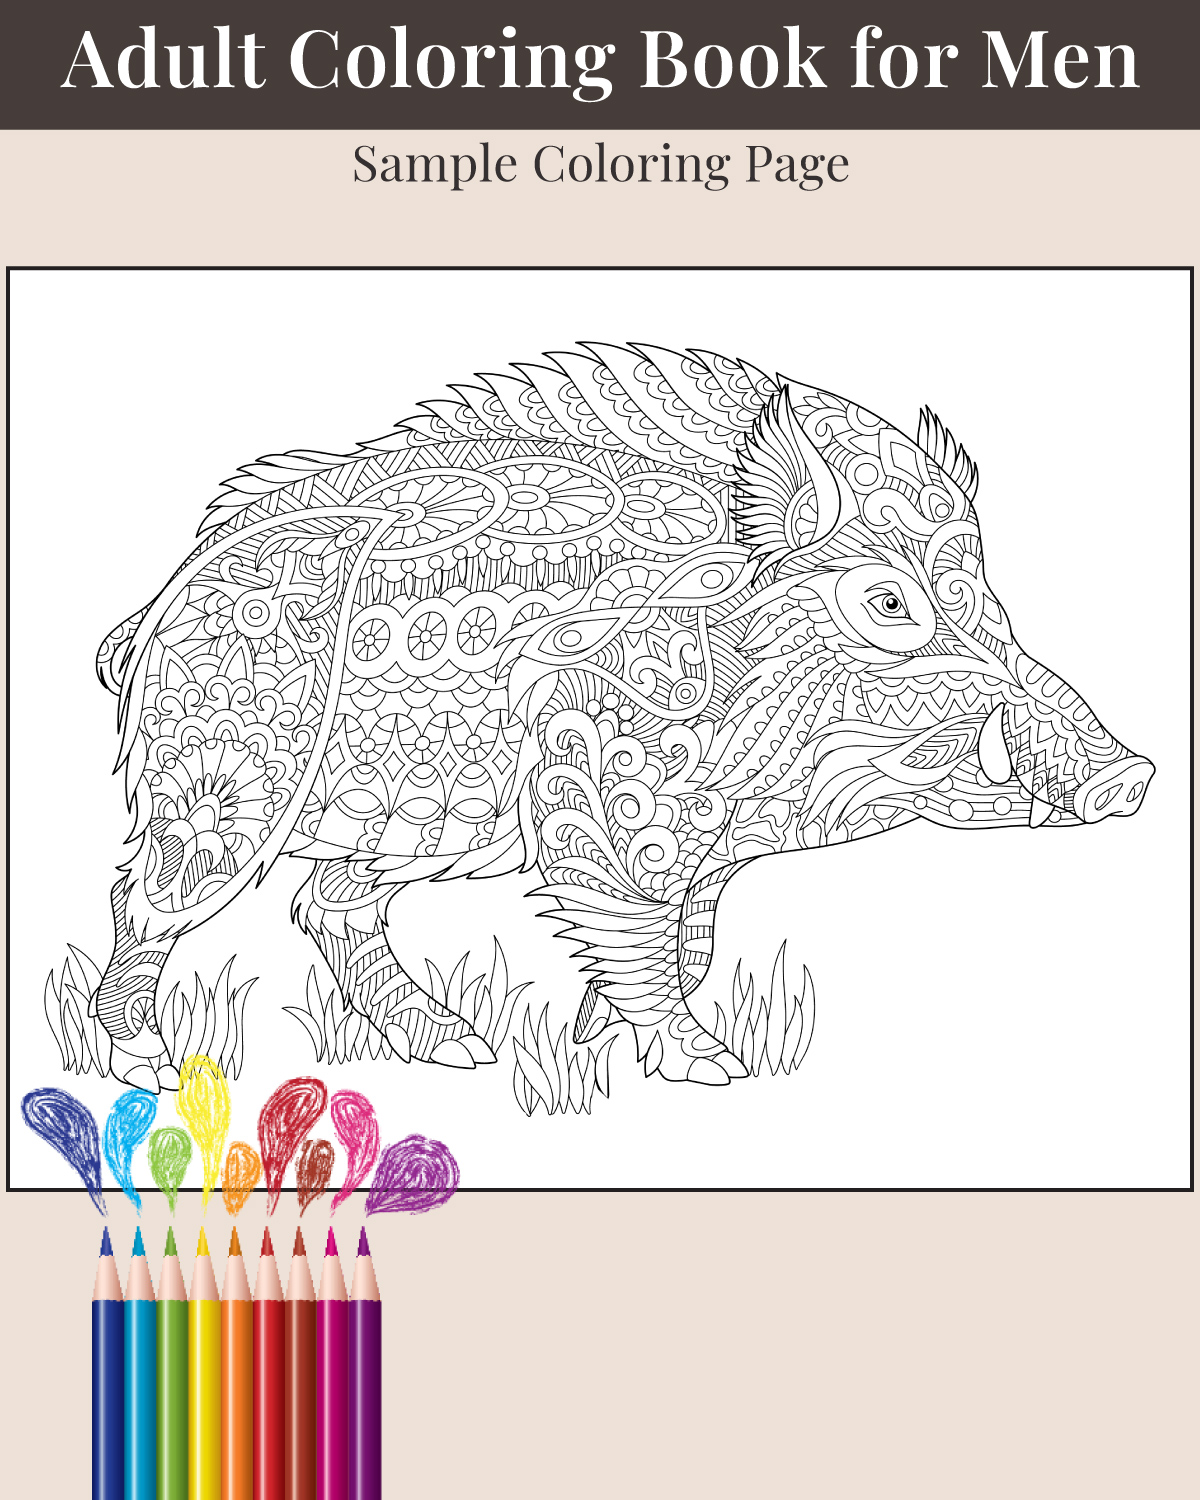 The-Ultimate-Adult-Coloring-Book-for-Men-Vol2-Sample-03